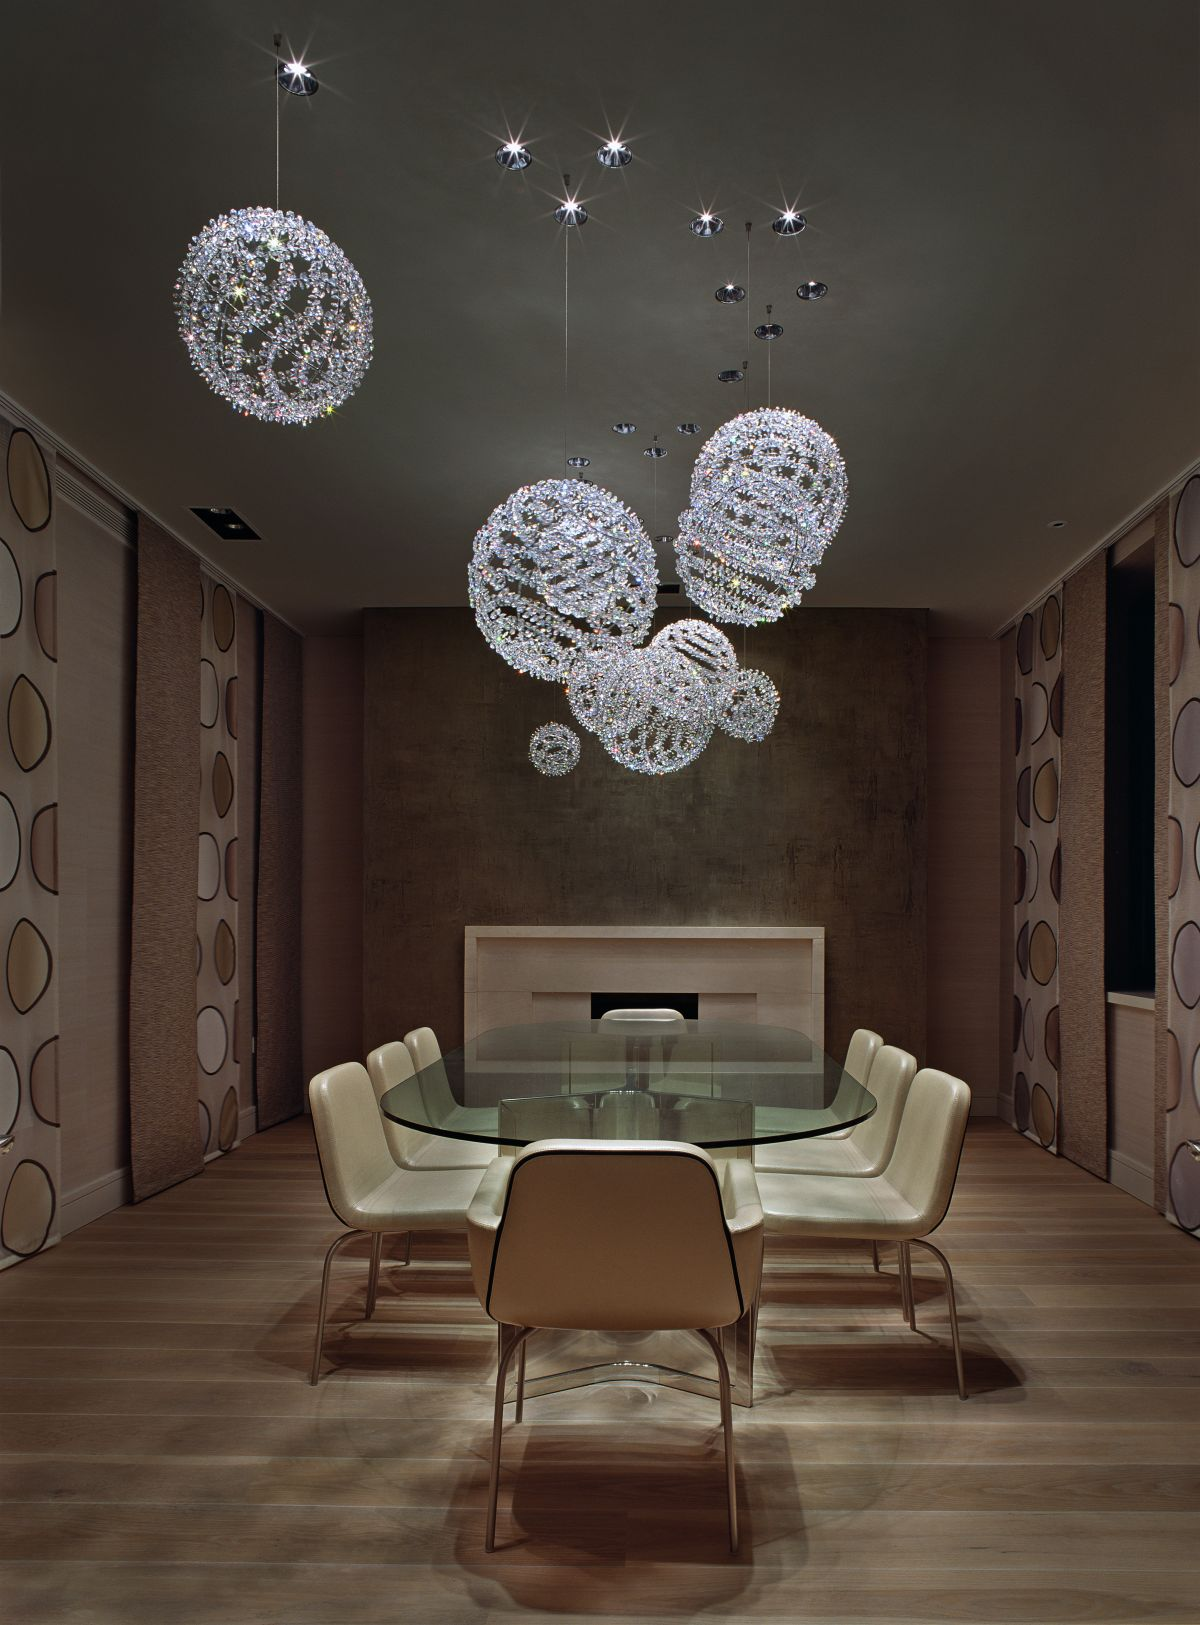 30 Amazing Crystal Chandeliers Ideas For Your Home on Dining Table Ceiling Design  id=54039